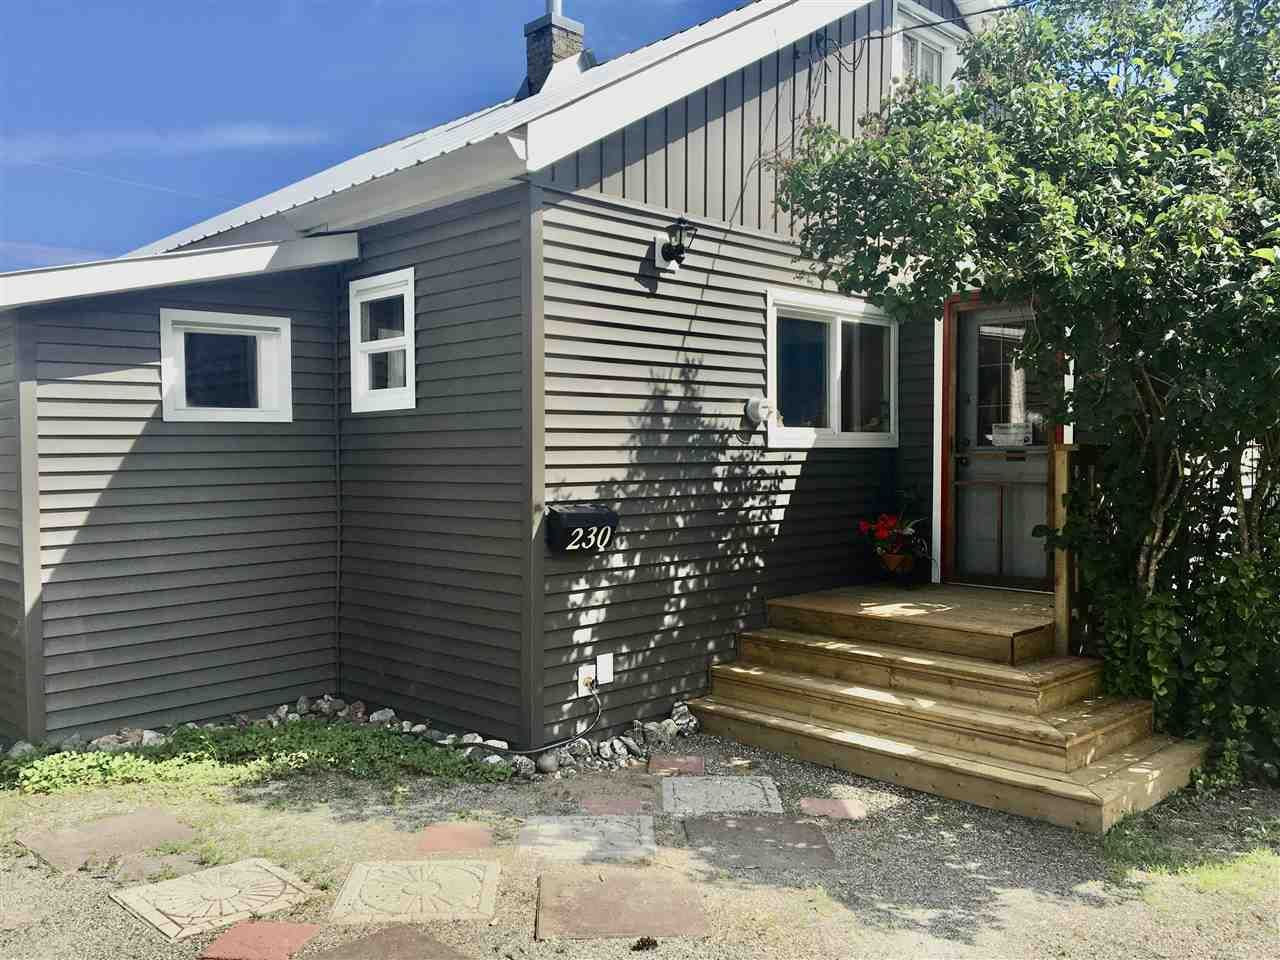 Photo 3: Photos: 230 BAKER Drive in Quesnel: Quesnel - Town House for sale (Quesnel (Zone 28))  : MLS®# R2481471